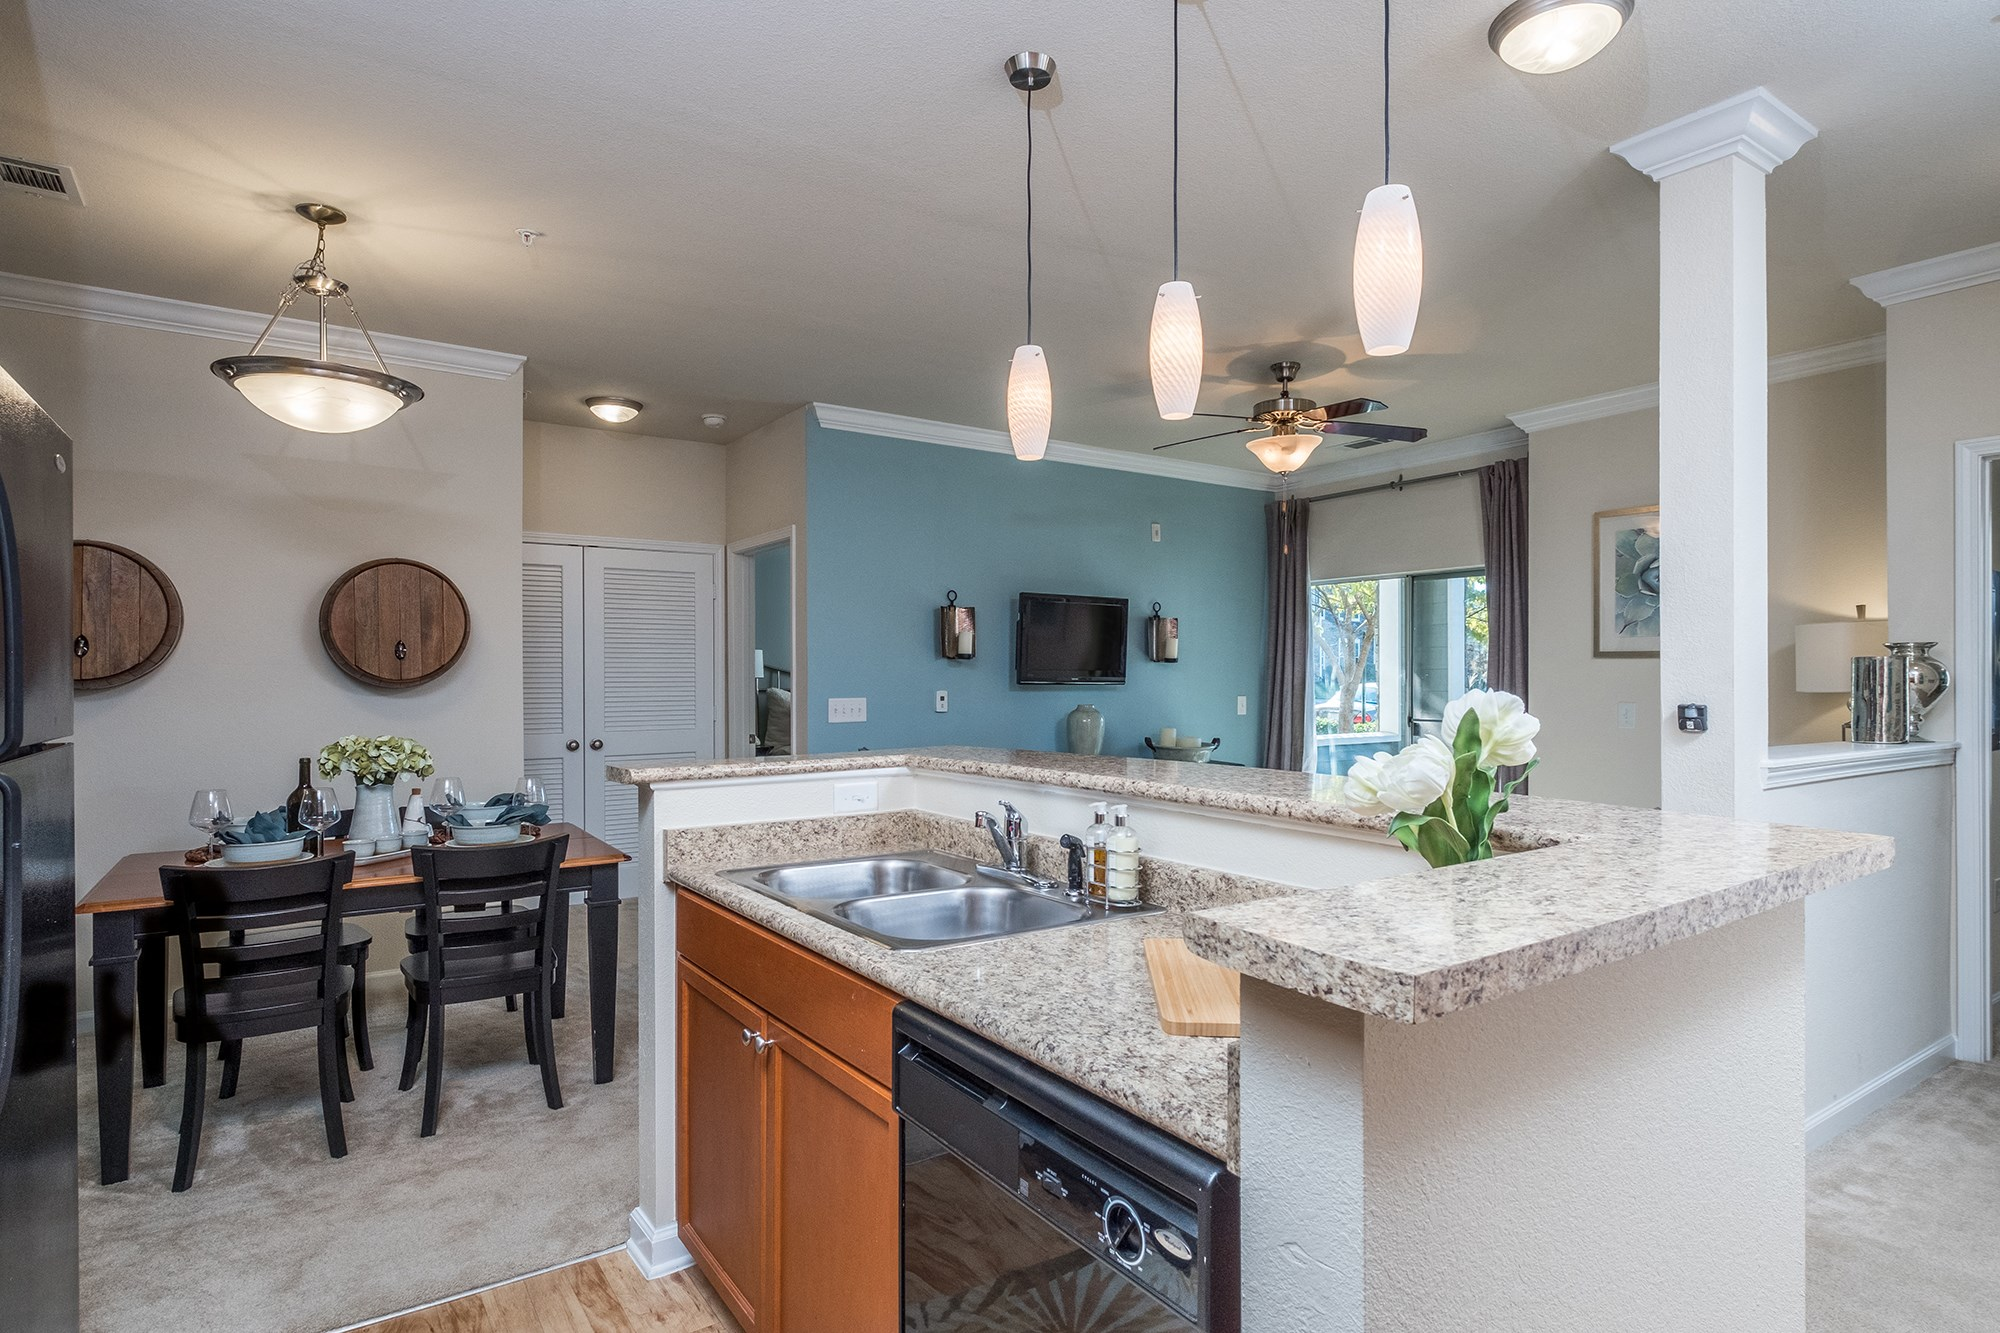 Open Floor Plans at View at Legacy Oaks Apartments in Knightdale, NC